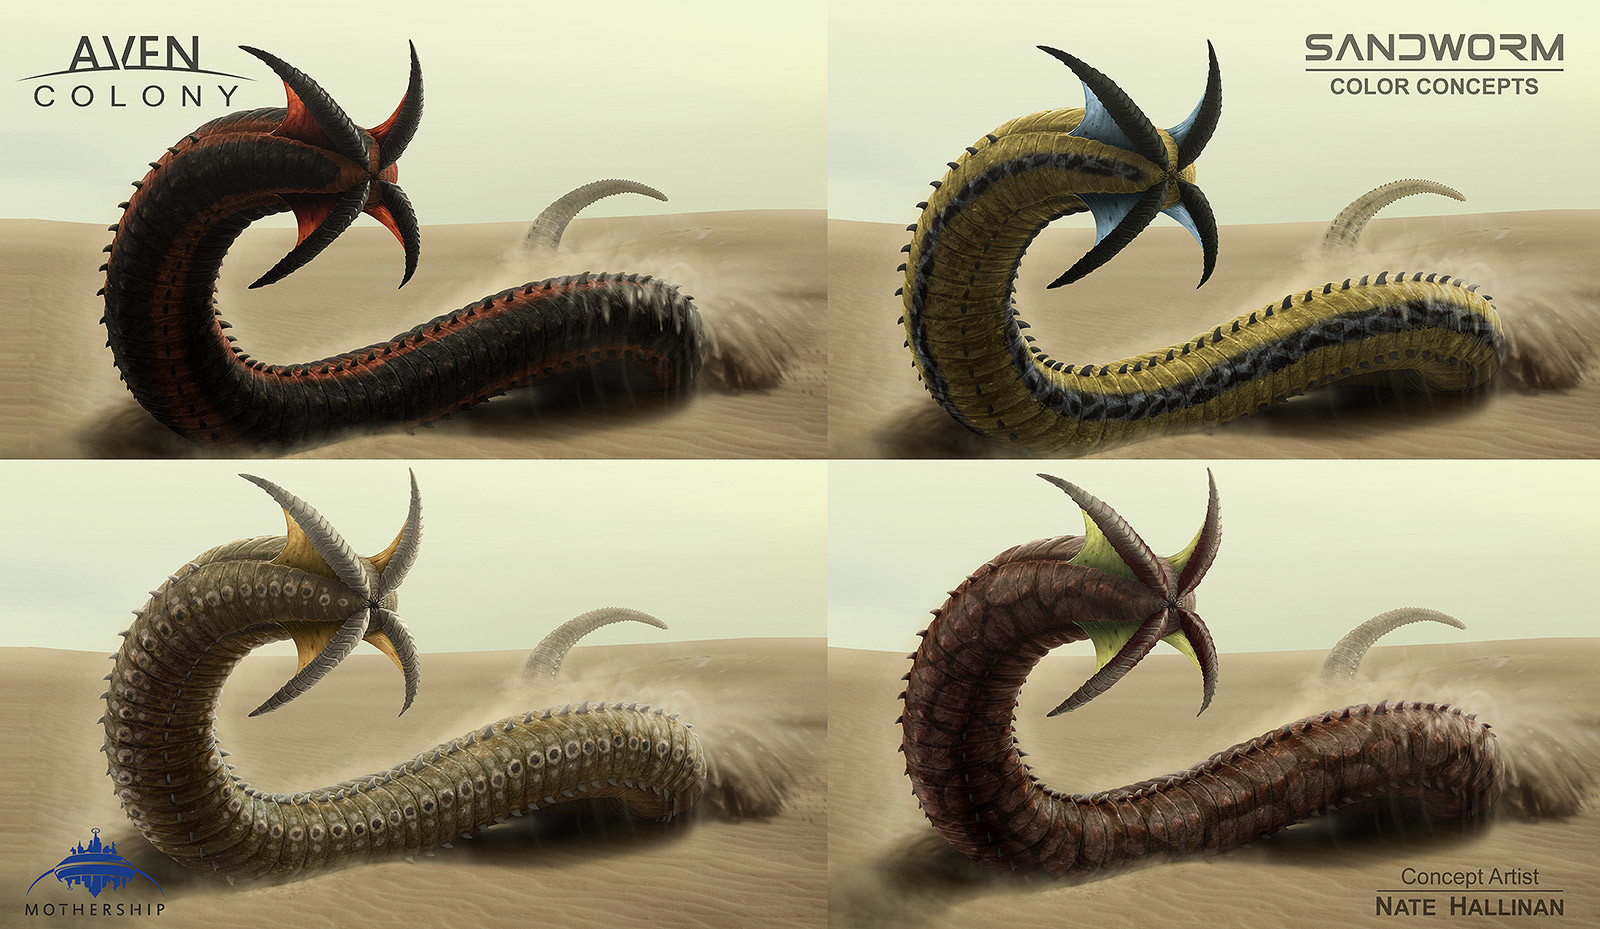 Nate hallinan ac alien sandworm colors